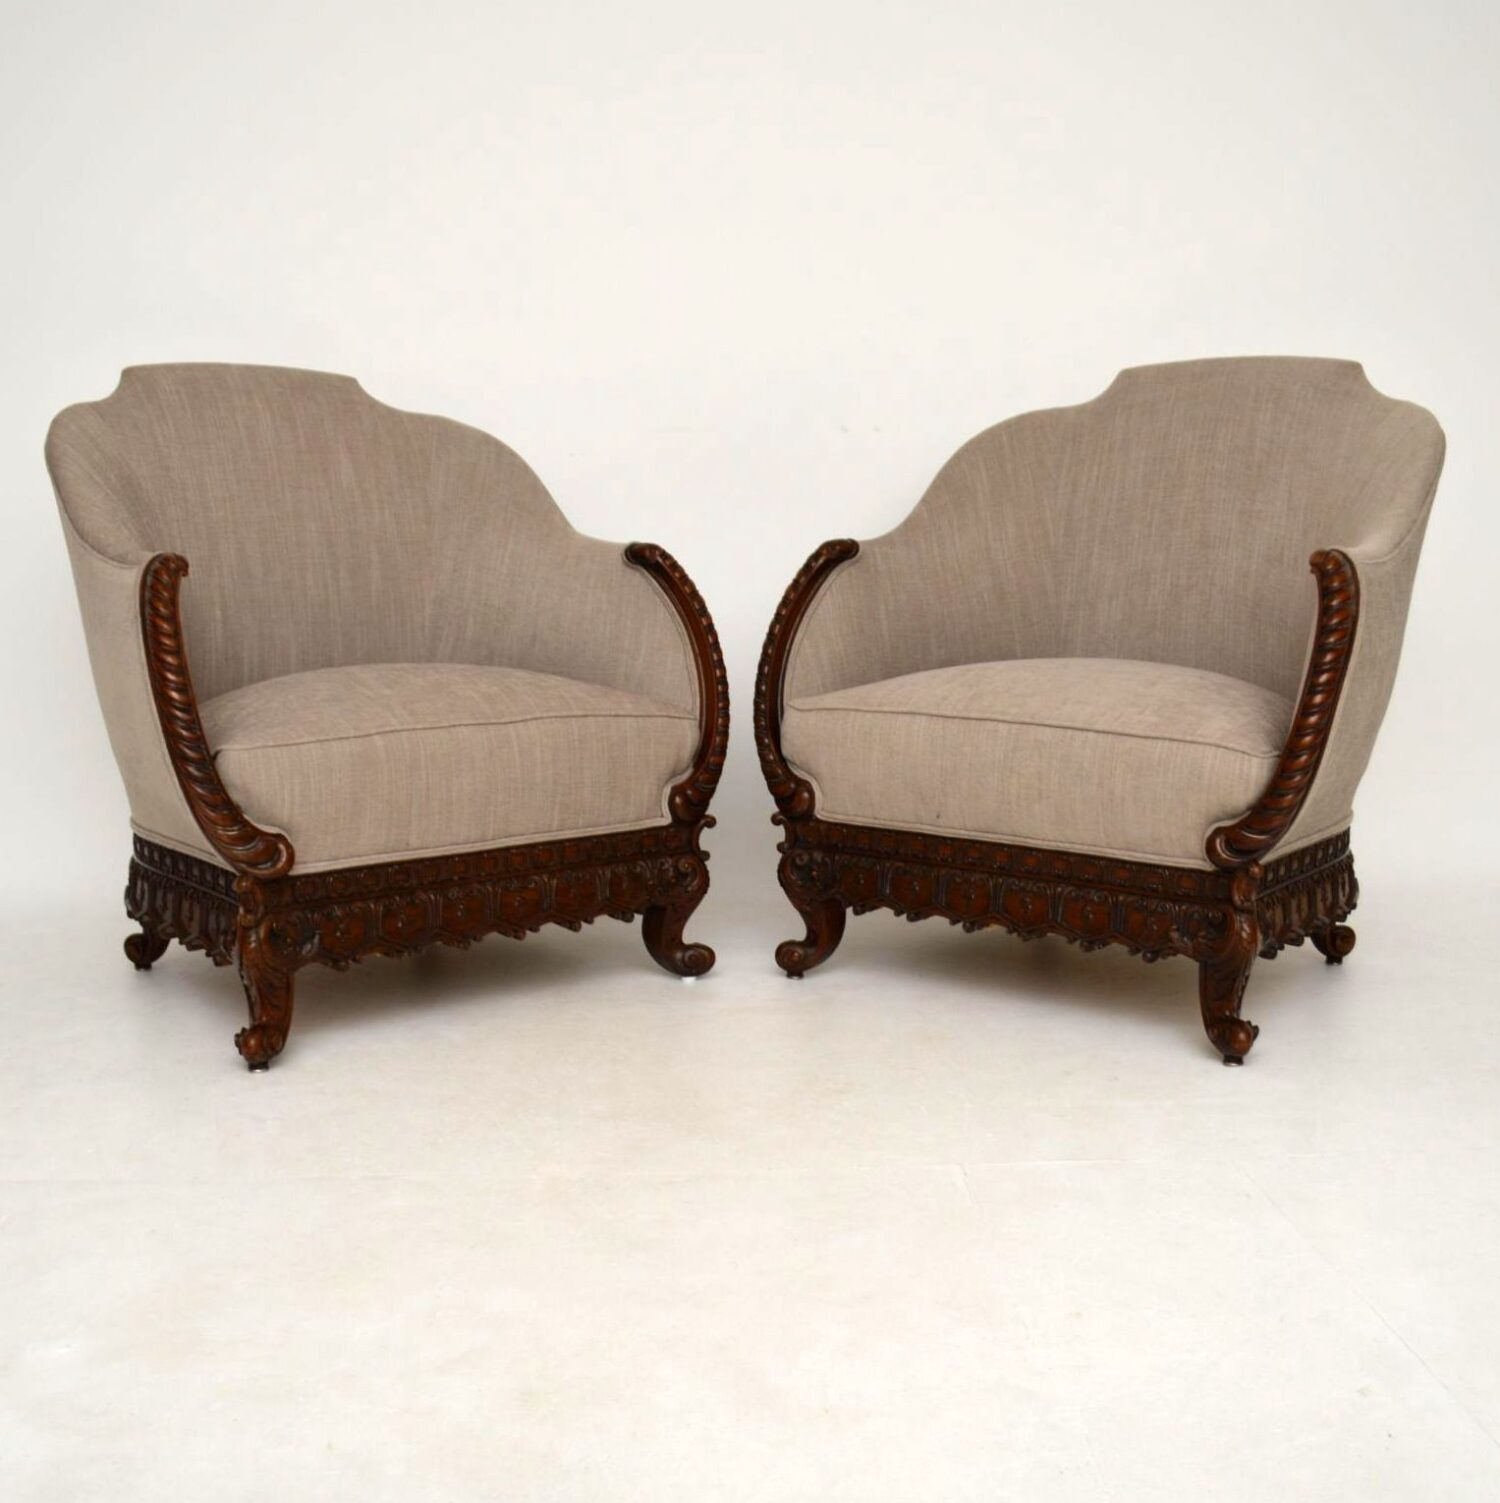 Pair of Antique Swedish Carved Mahogany Armchairs